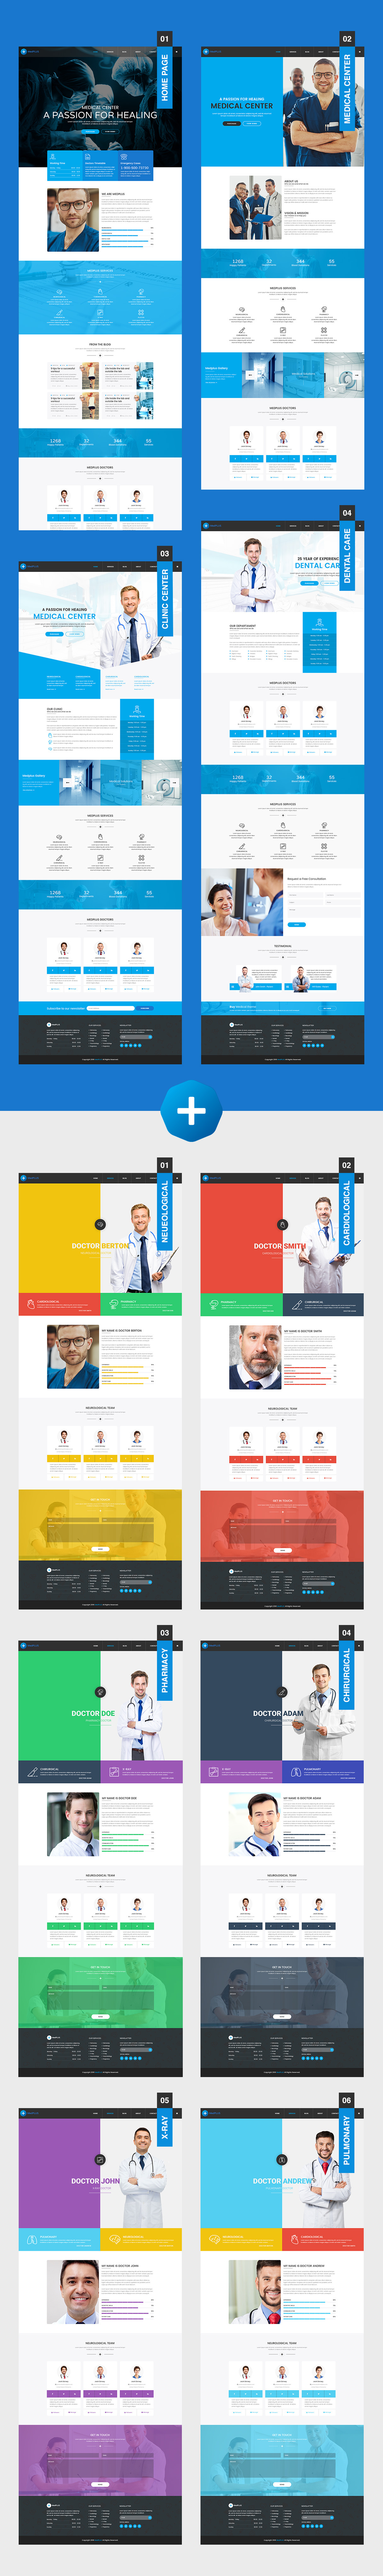 MedPlus – Medical & Health WordPress Theme - 1